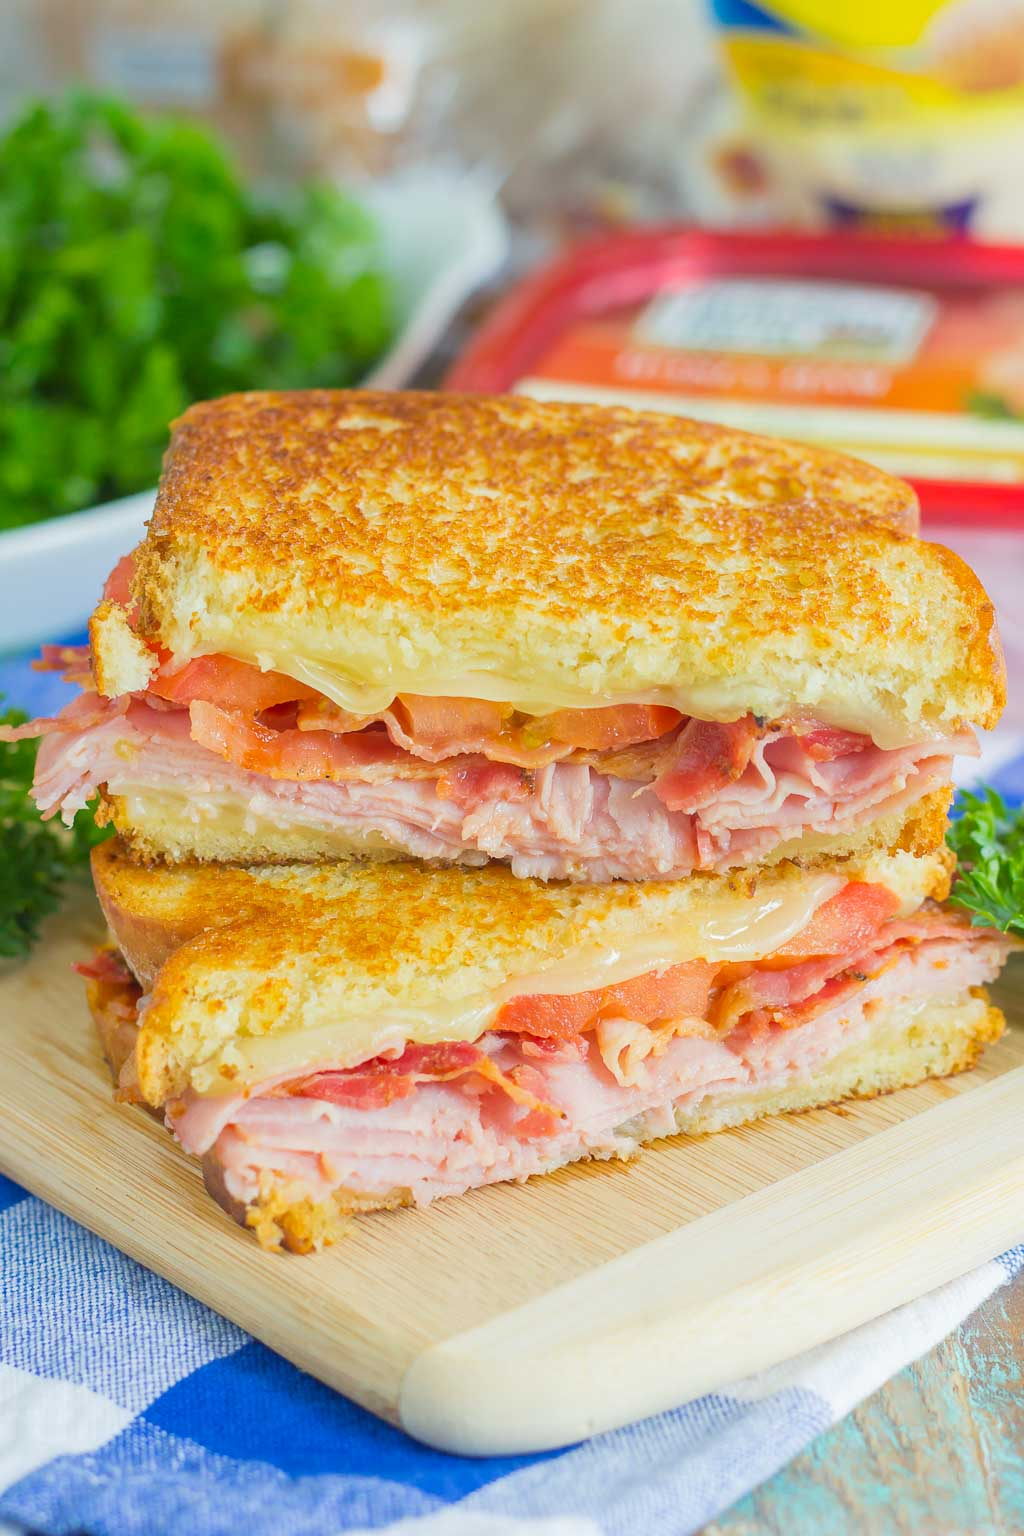 Thinly sliced honey ham, swiss cheese, fresh tomatoes, and crispy bacon are packed between fresh slices of bread that are grilled to perfection. With just six ingredients and hardly any prep work, you can have this Grilled Ham and Swiss Sandwich ready to be devoured in no time!